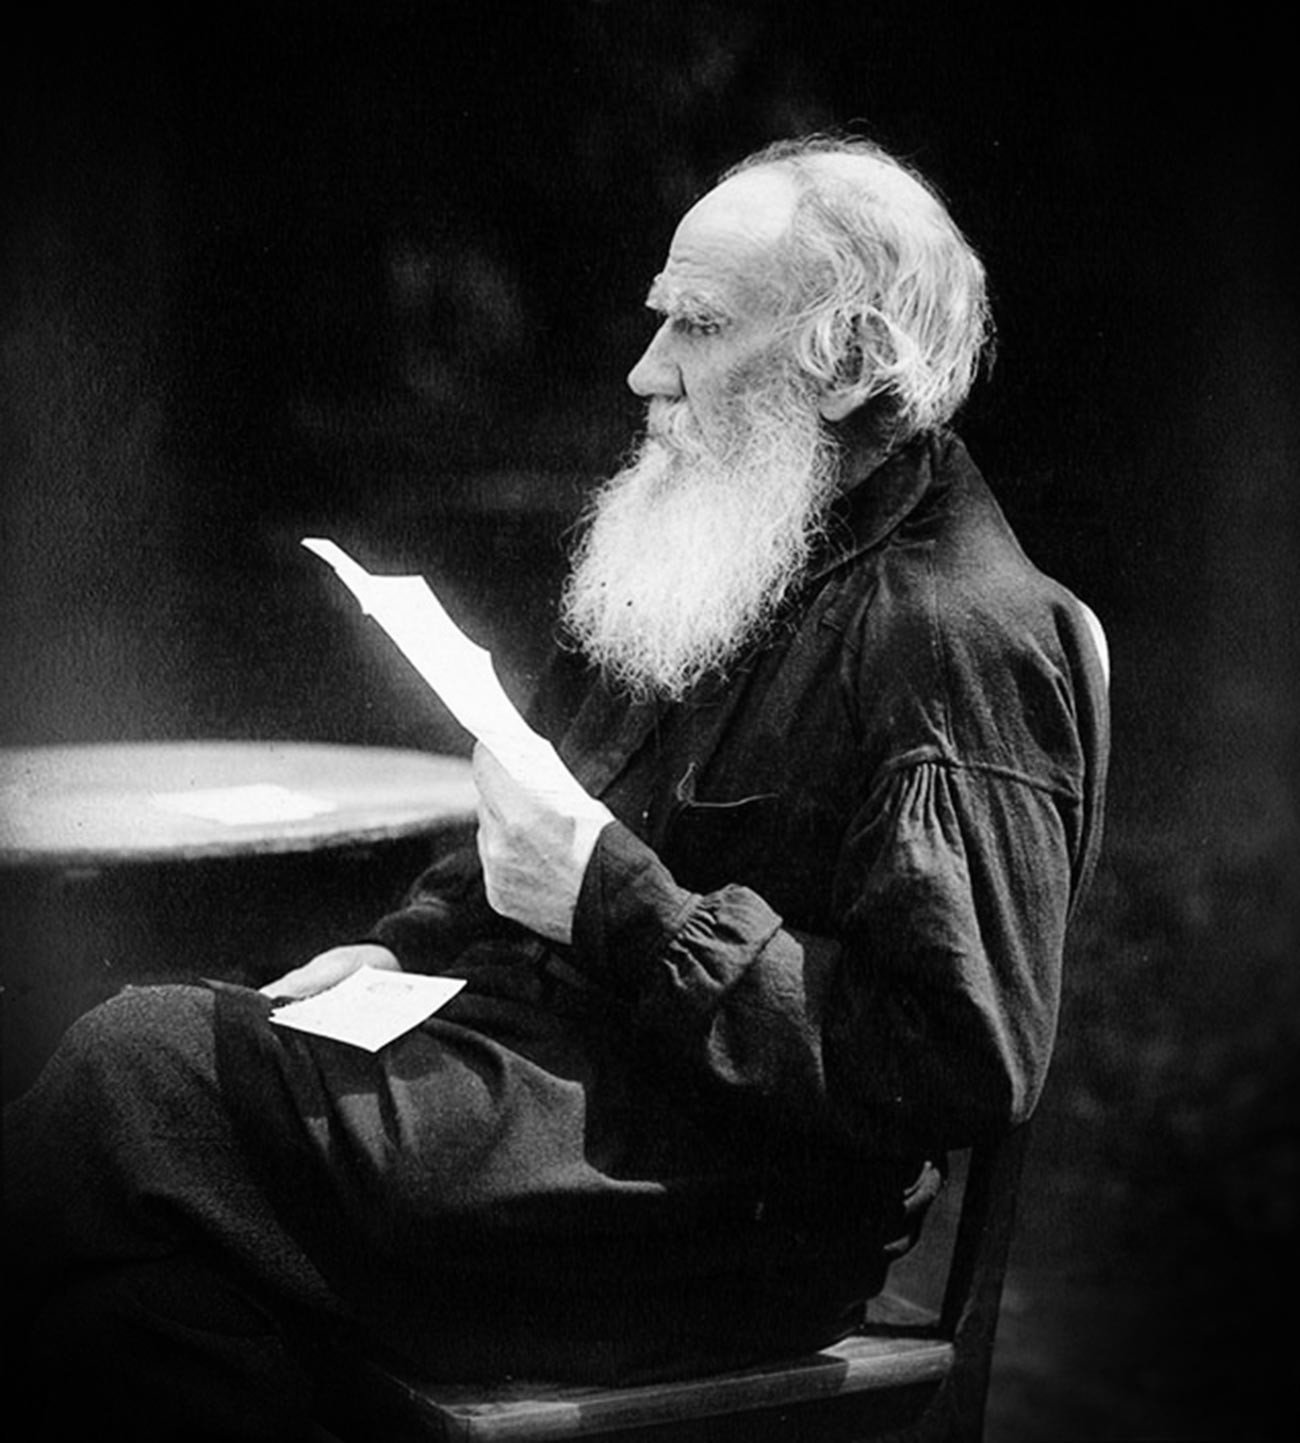 Leo Tolstoy reading a letter